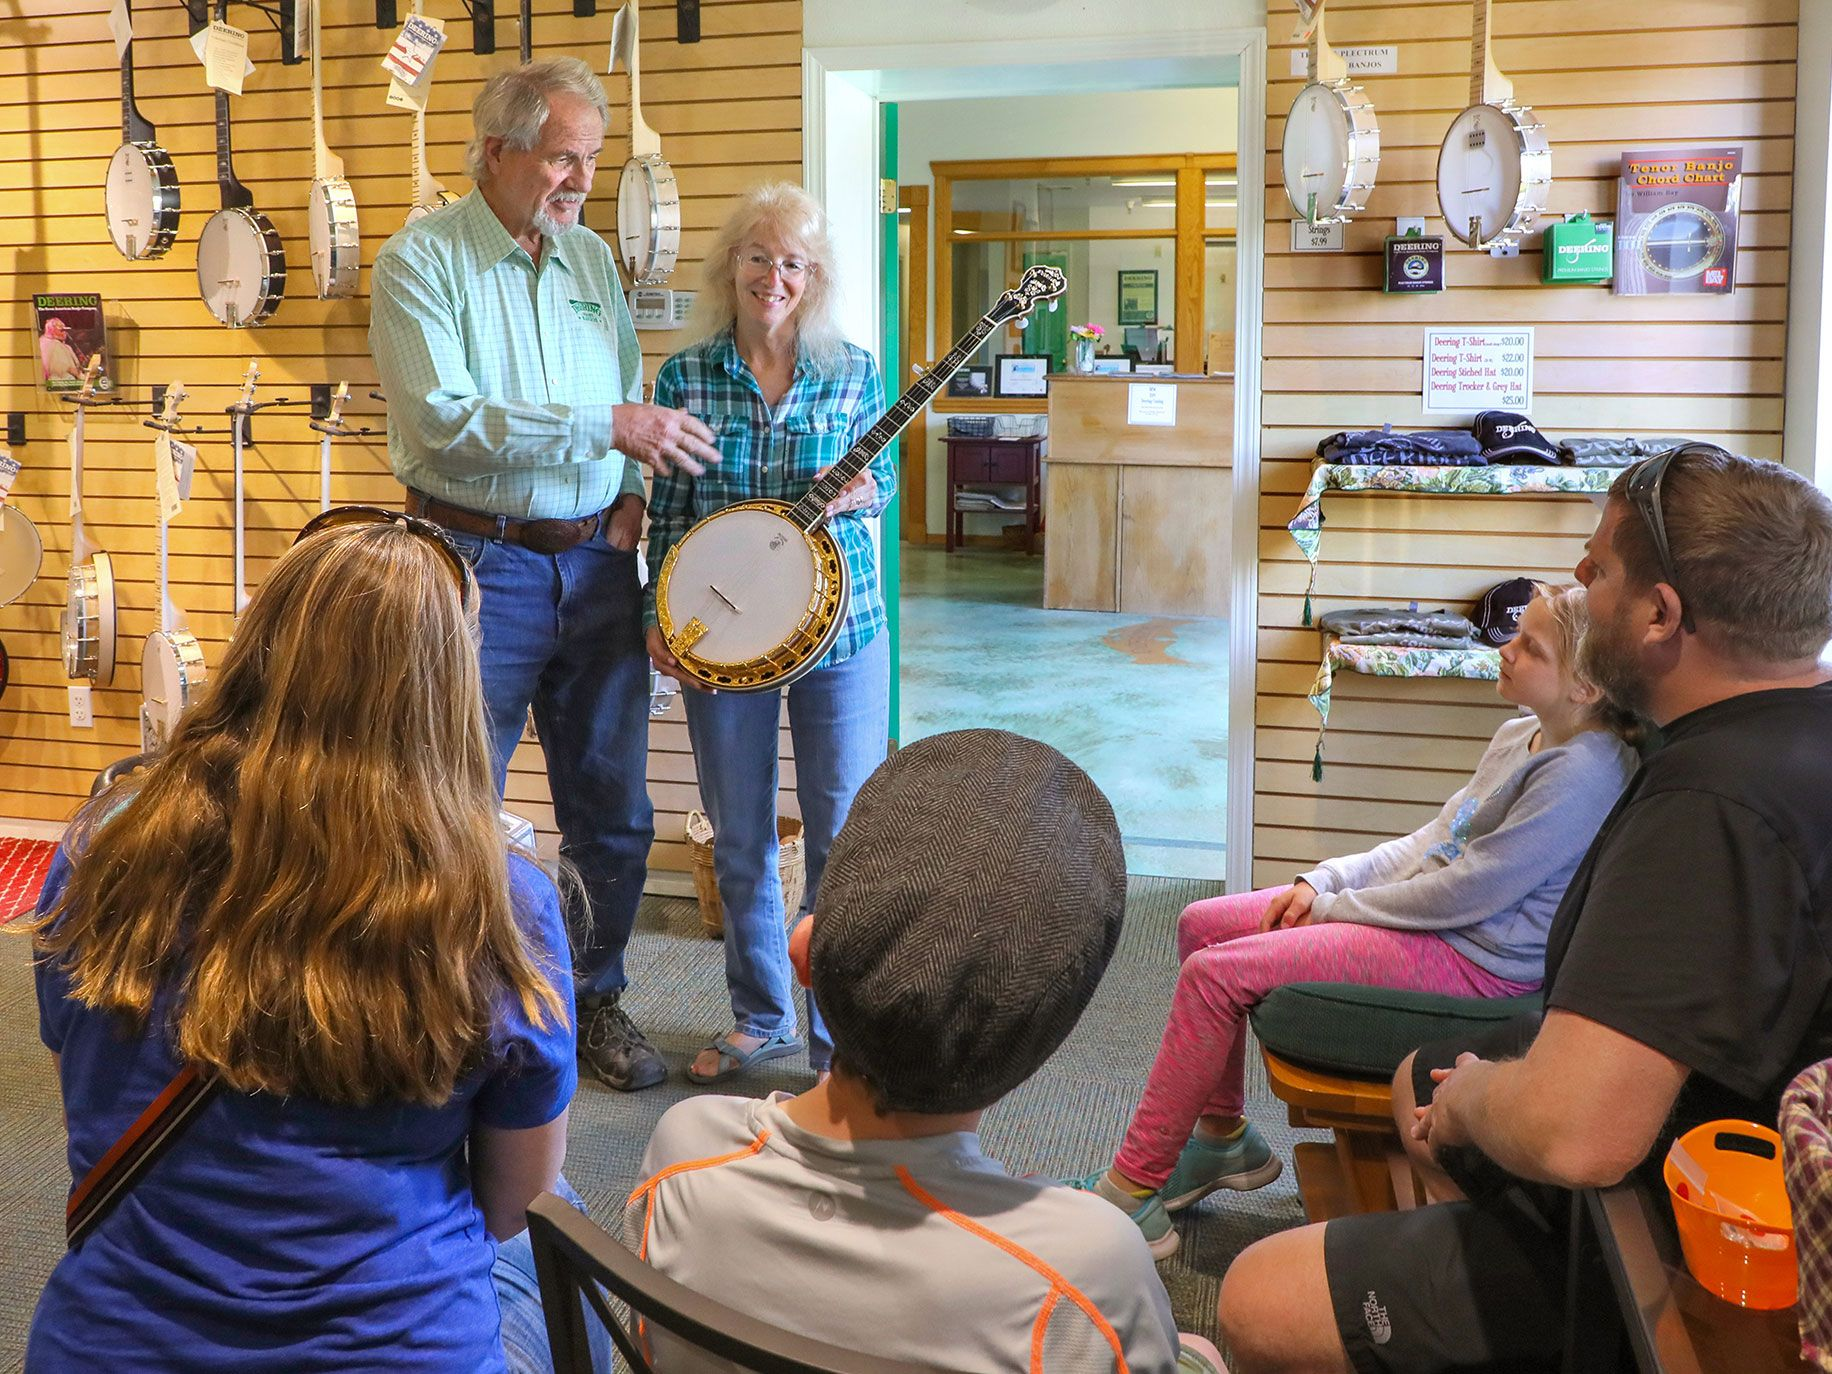 In the display room of the Deering Banjo Company Greg and Janet Deering speak with a family from Tucson, Arizona that are about to take a tour of the facility. The banjo Janet is holding is an Ivanhoe Gold model. At left are the company's Goodtime line of banjos.